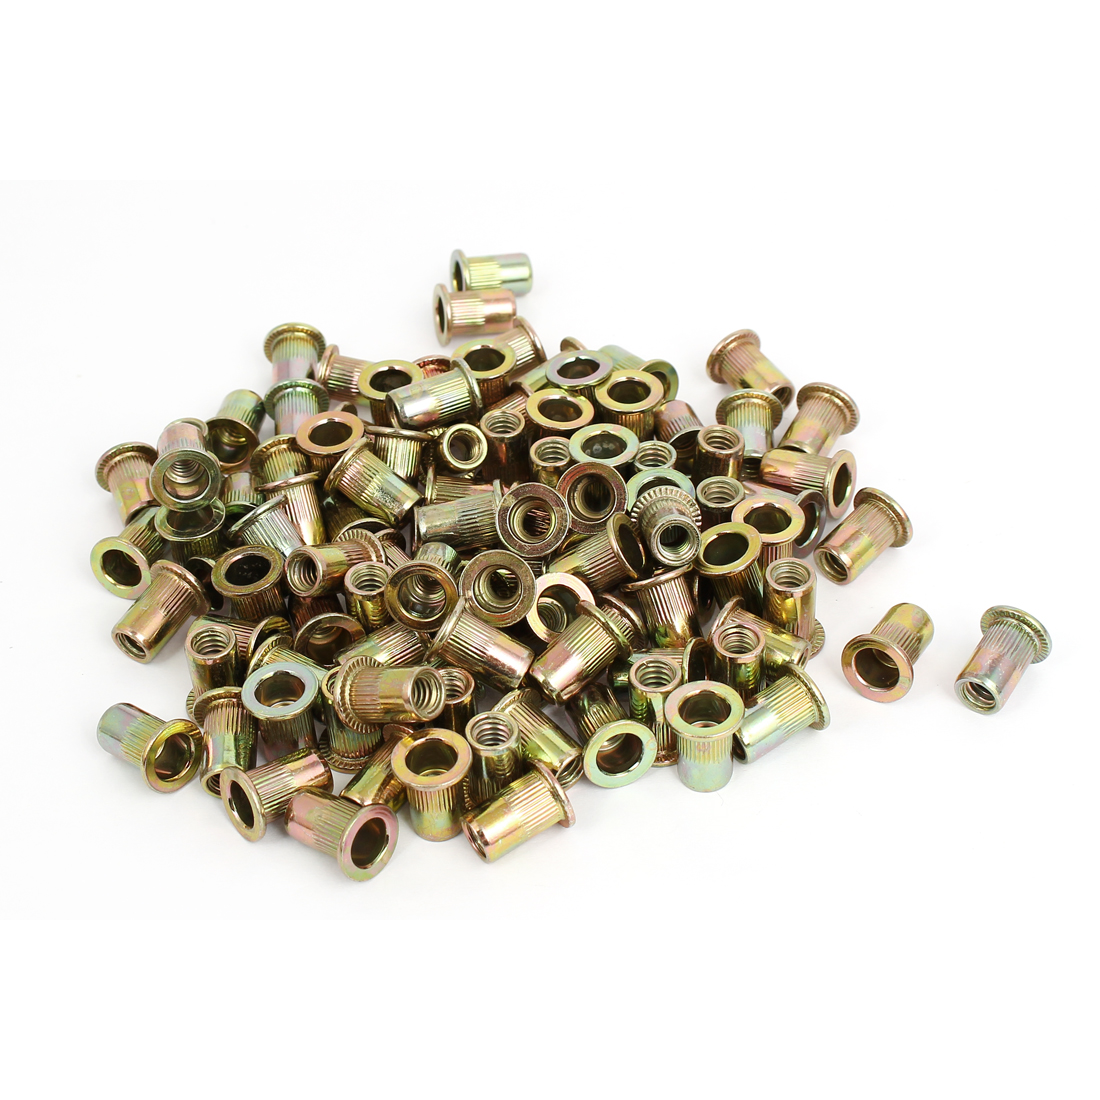 "1/4"" Thread 15mm Long Rivet Nut Insert Nutsert 150pcs"